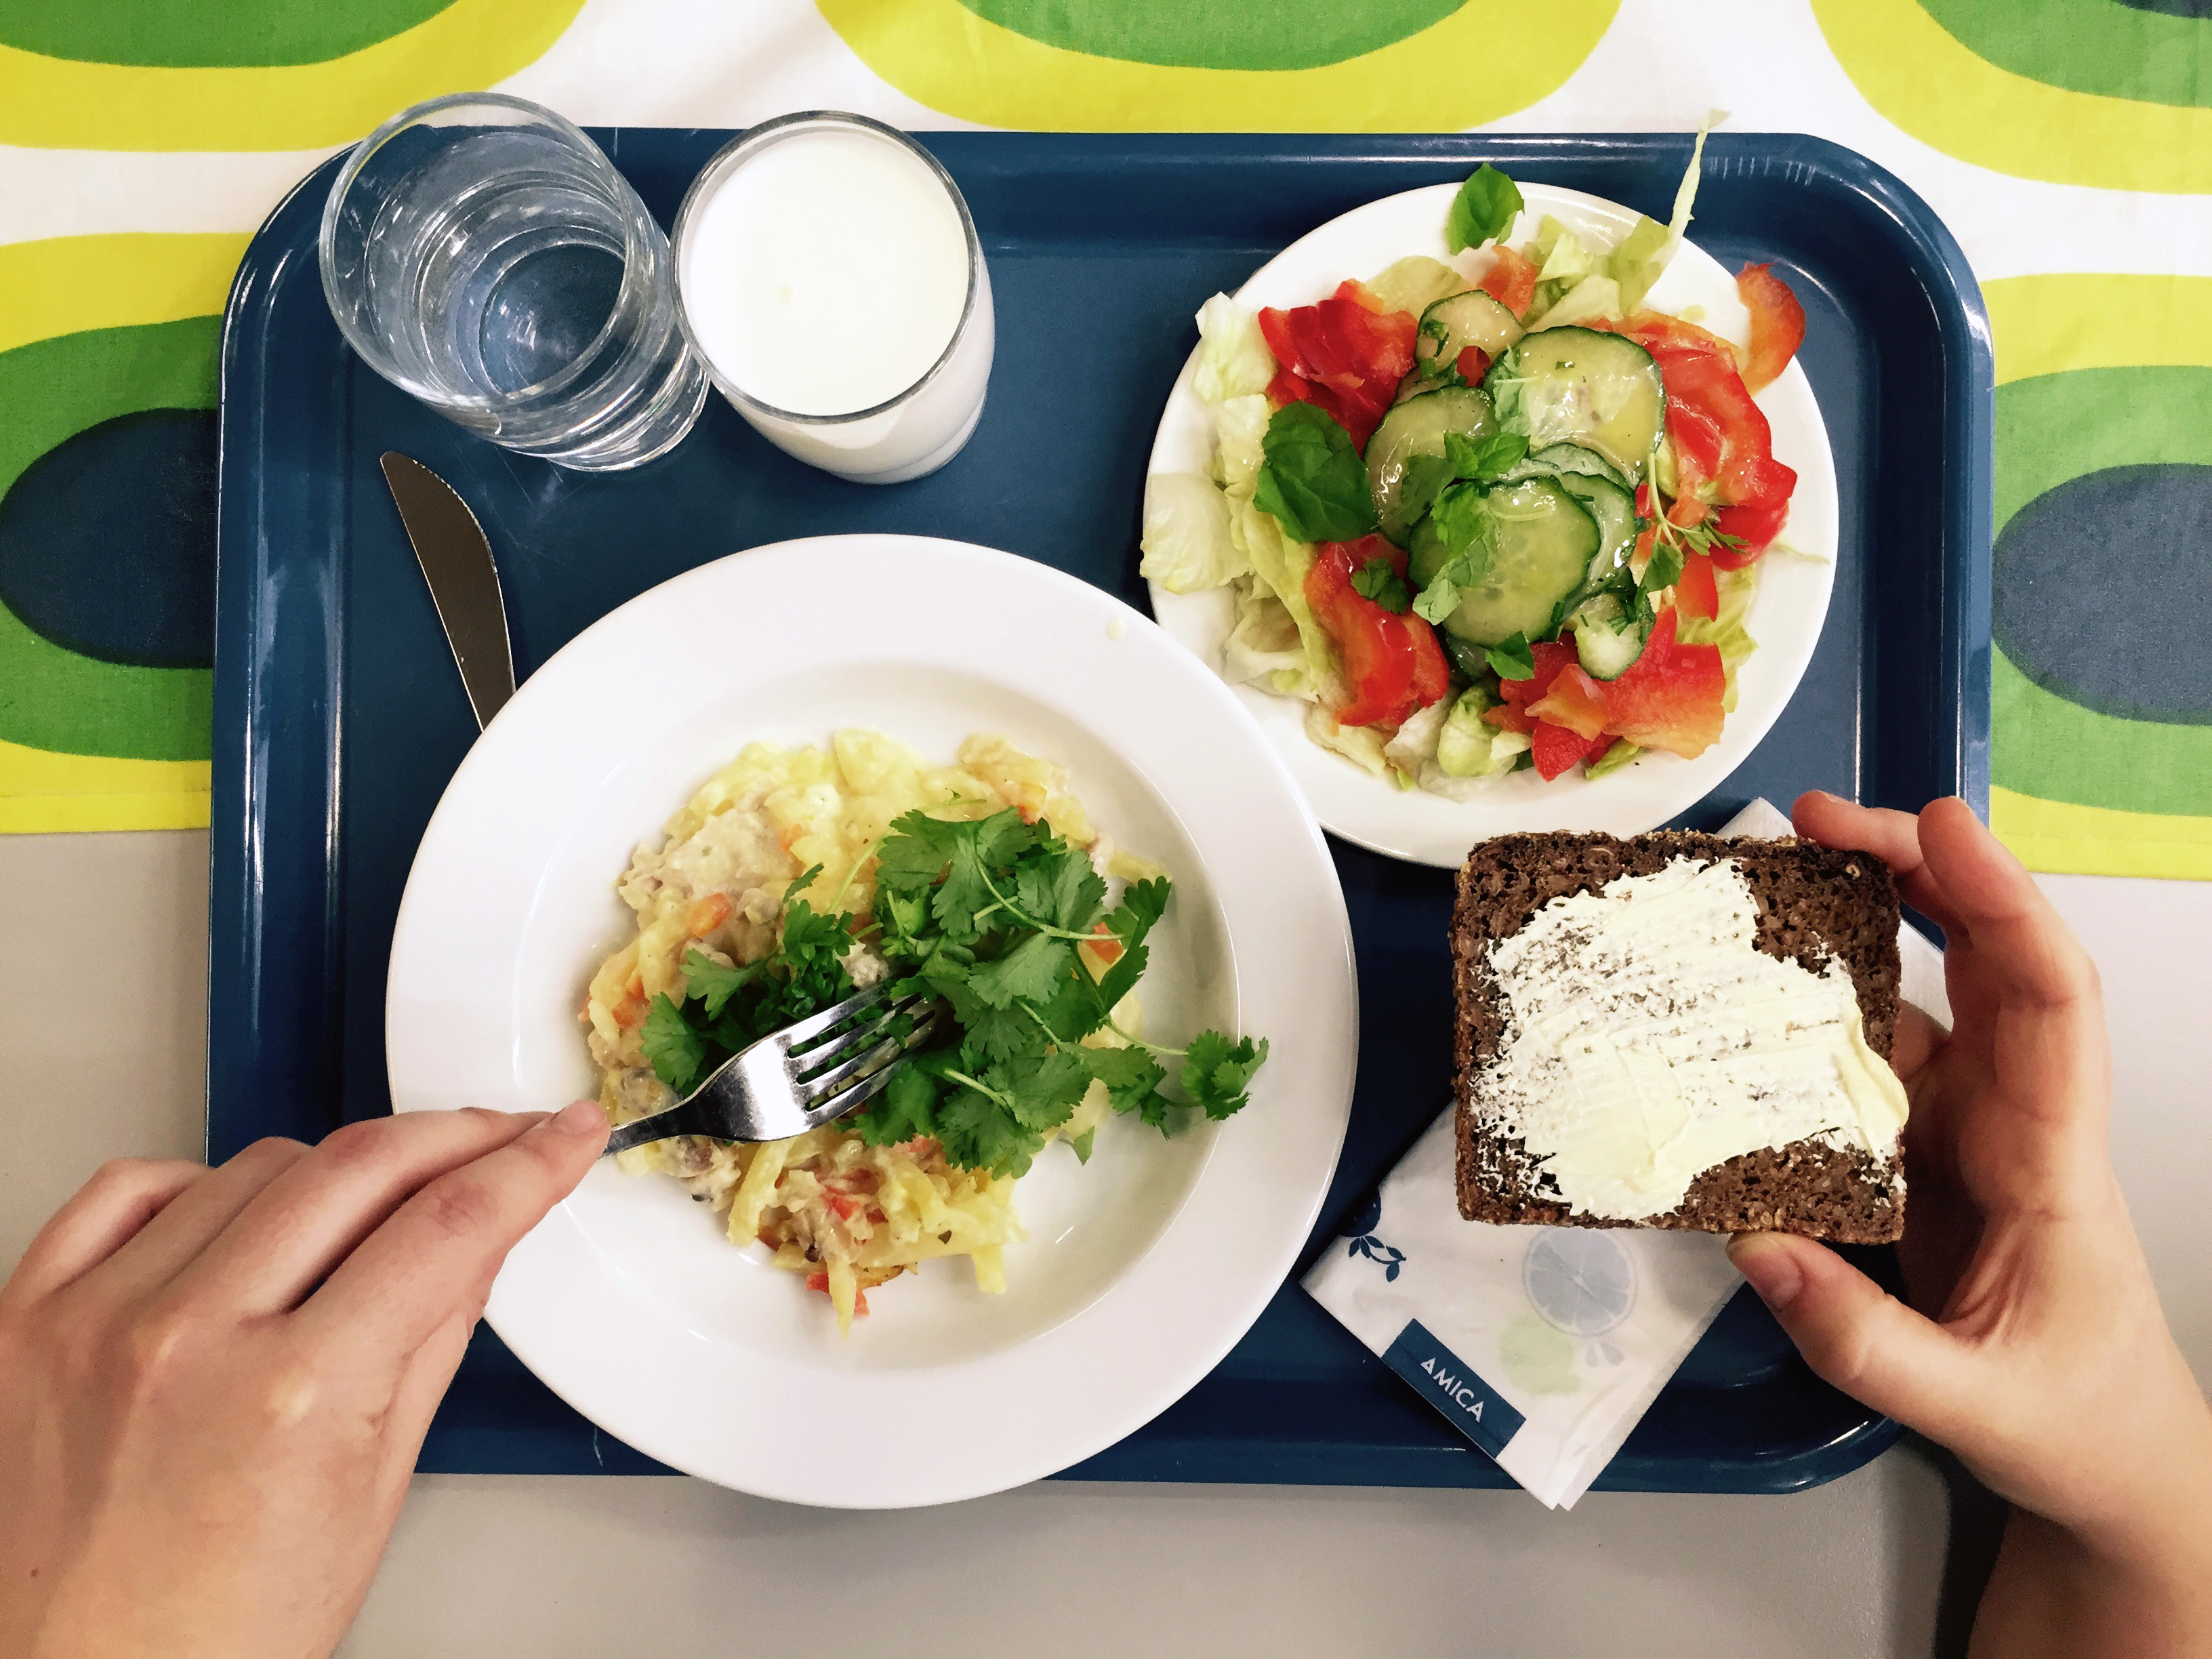 Do Finland's School Lunches Help Students Score Higher On Tests?